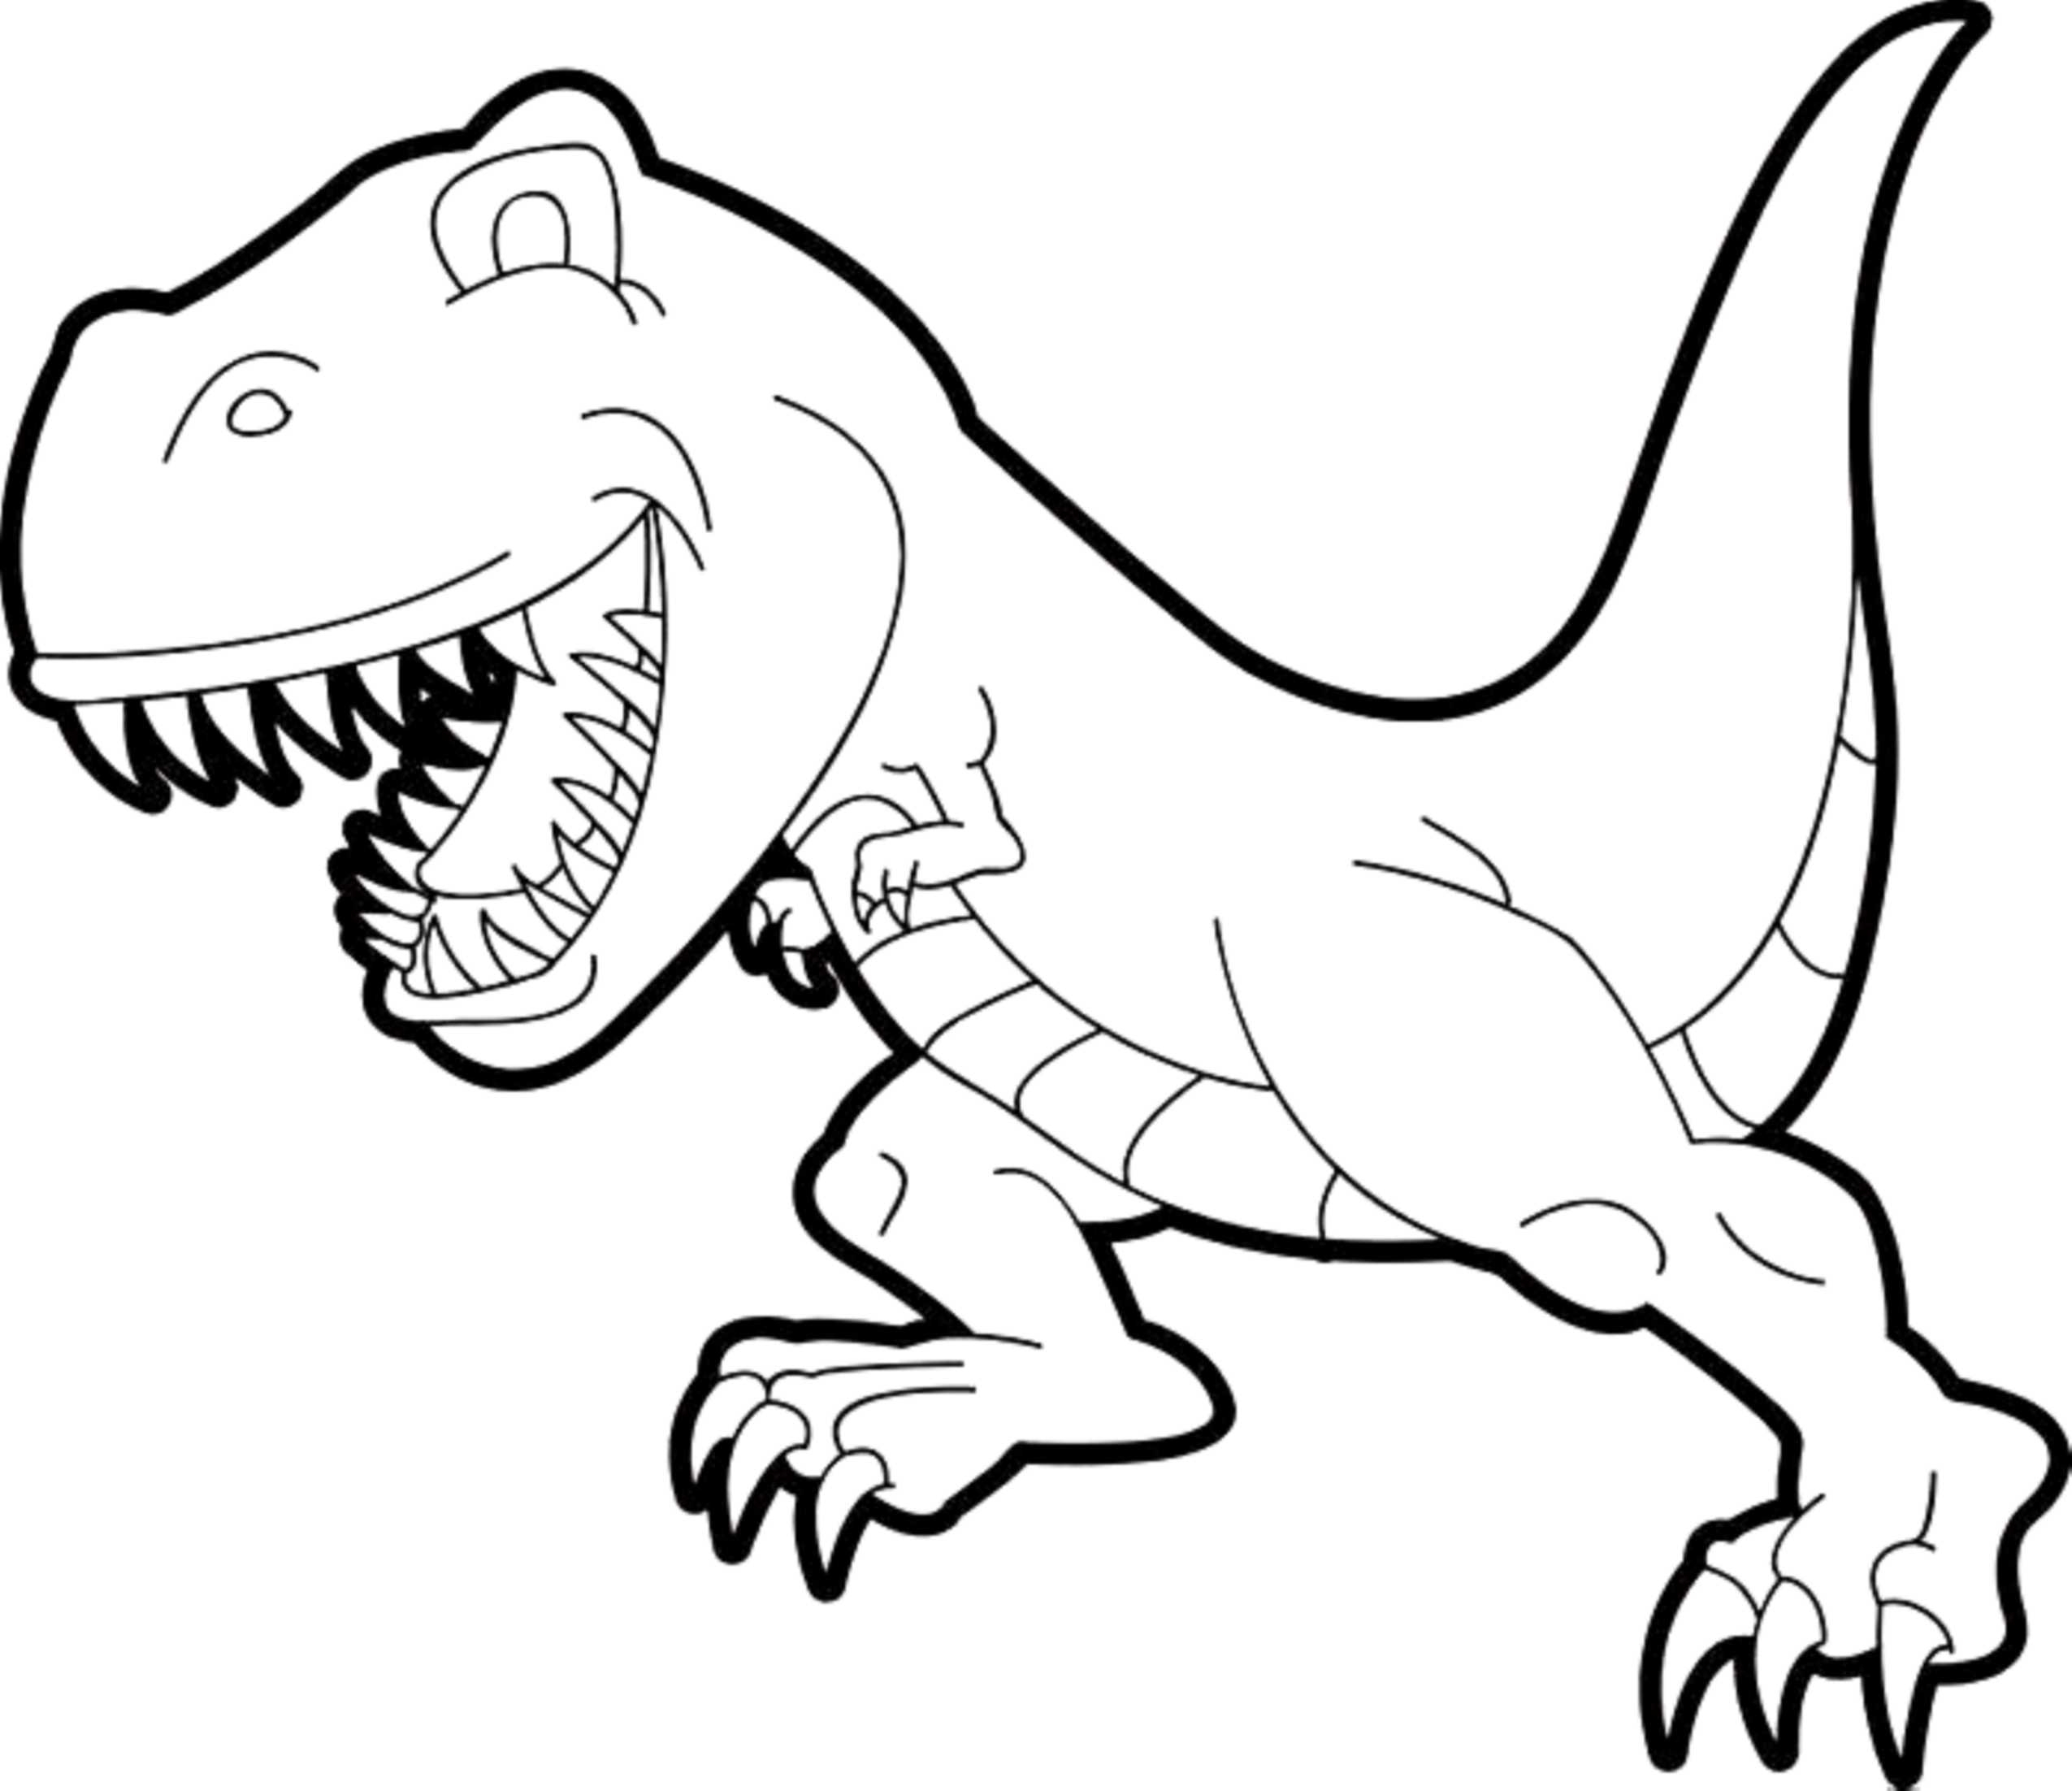 T Rex Dinosaur Coloring Pages At Getcolorings